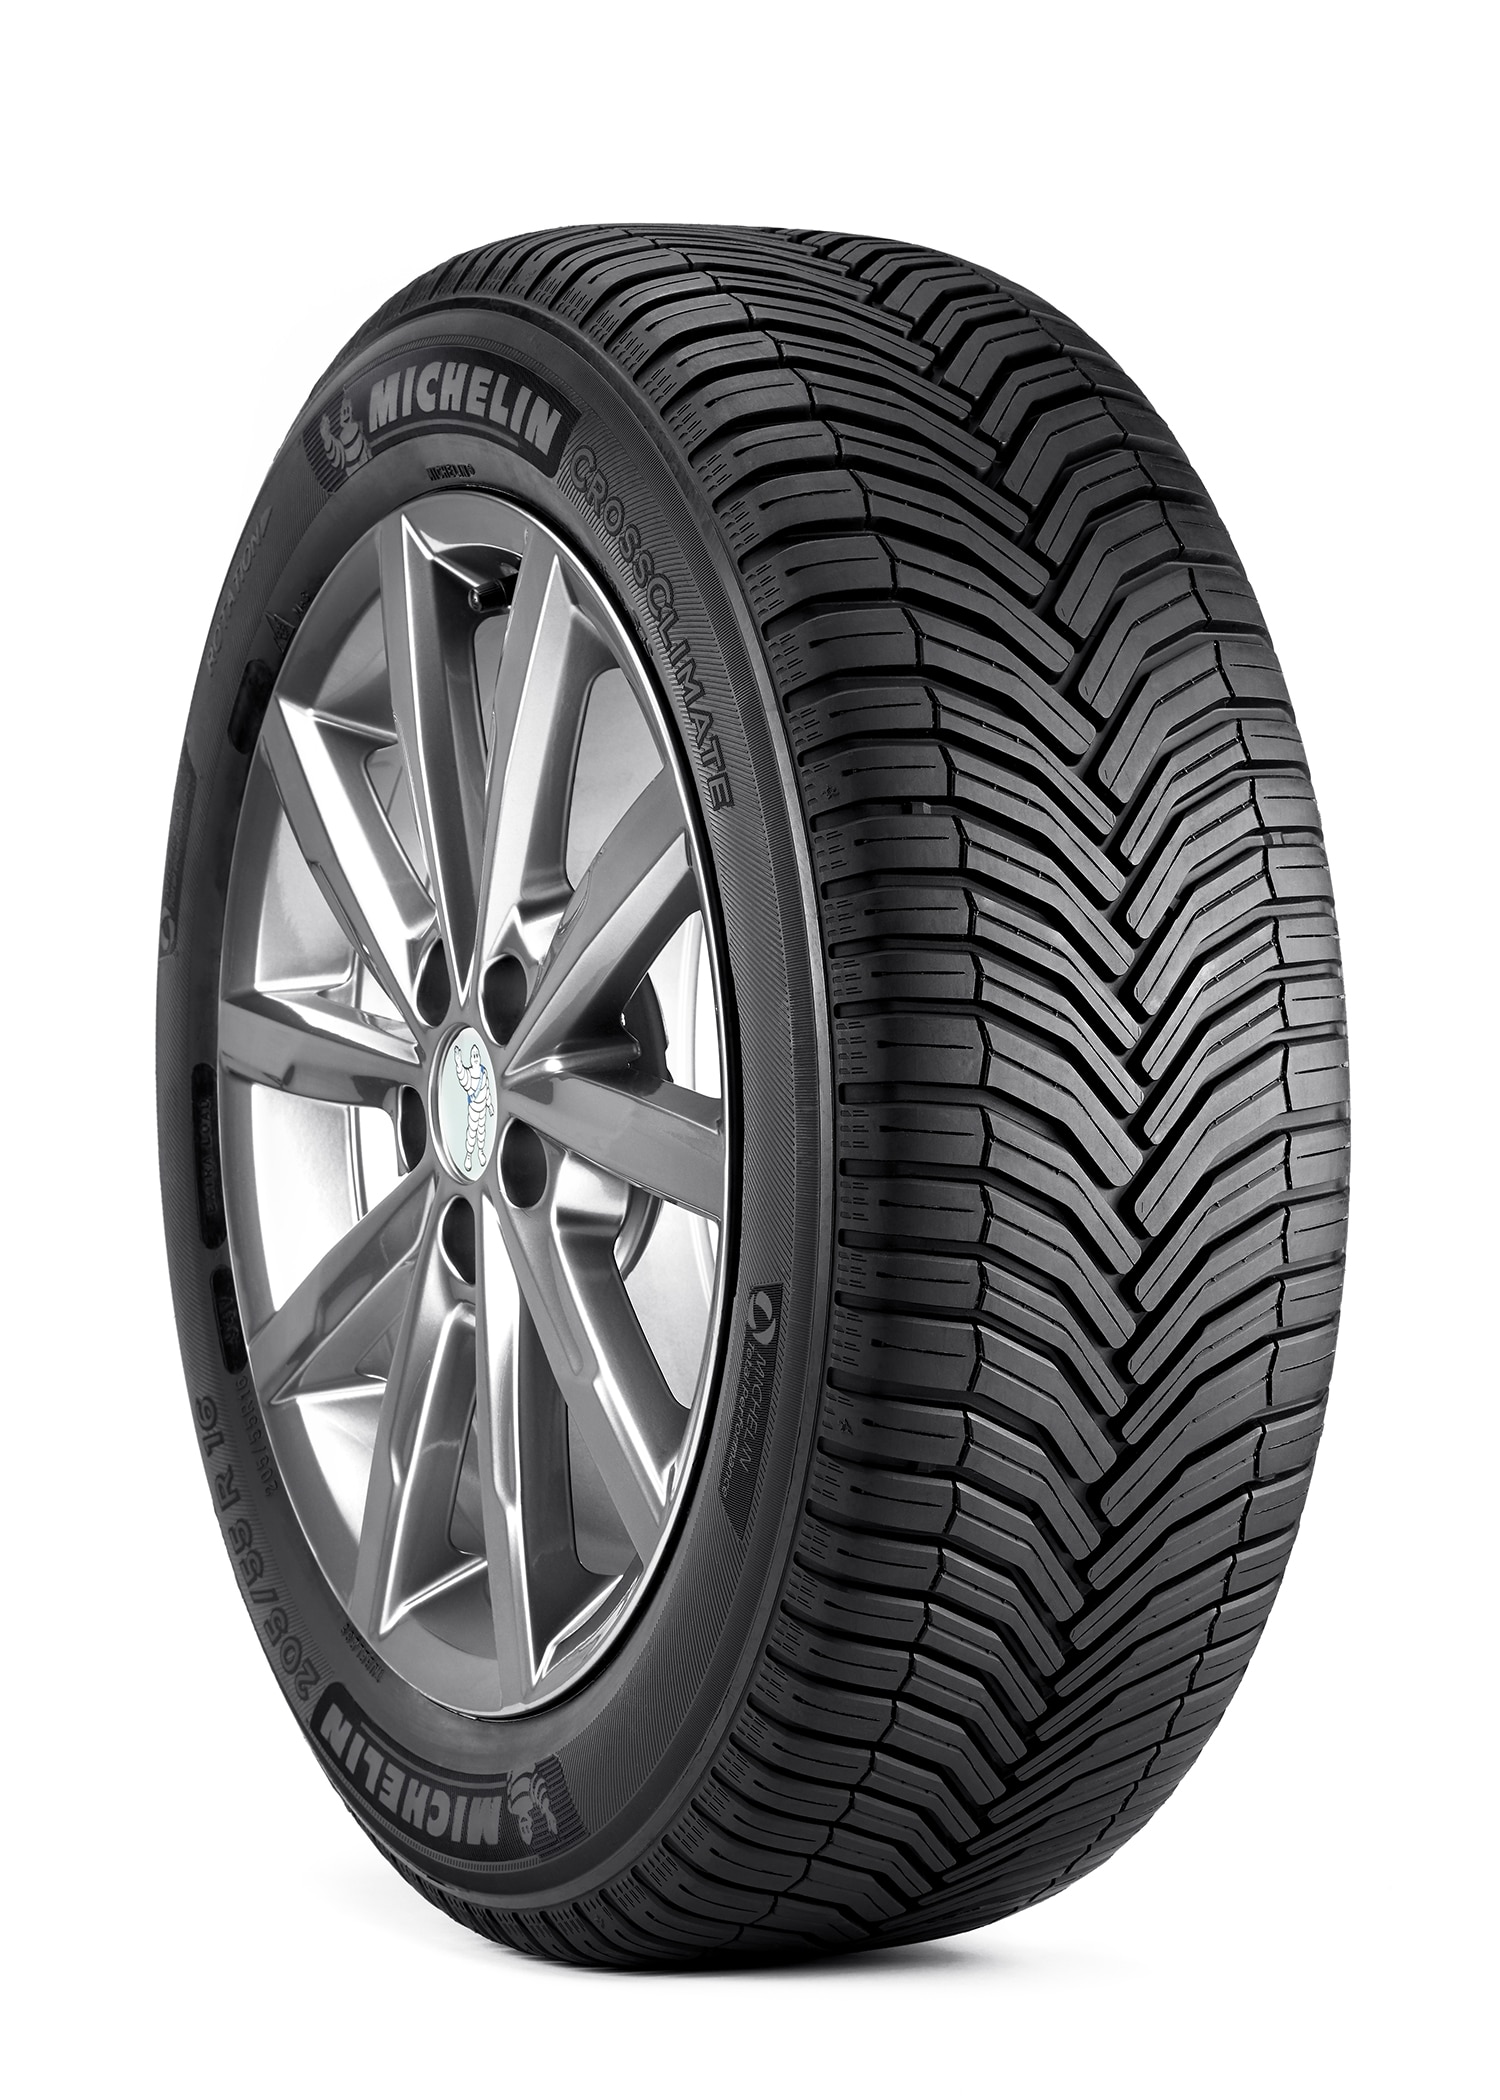 Michelin X-Ice Xi3 >> Michelin CrossClimate: A New Type of Tire | Automobile Magazine